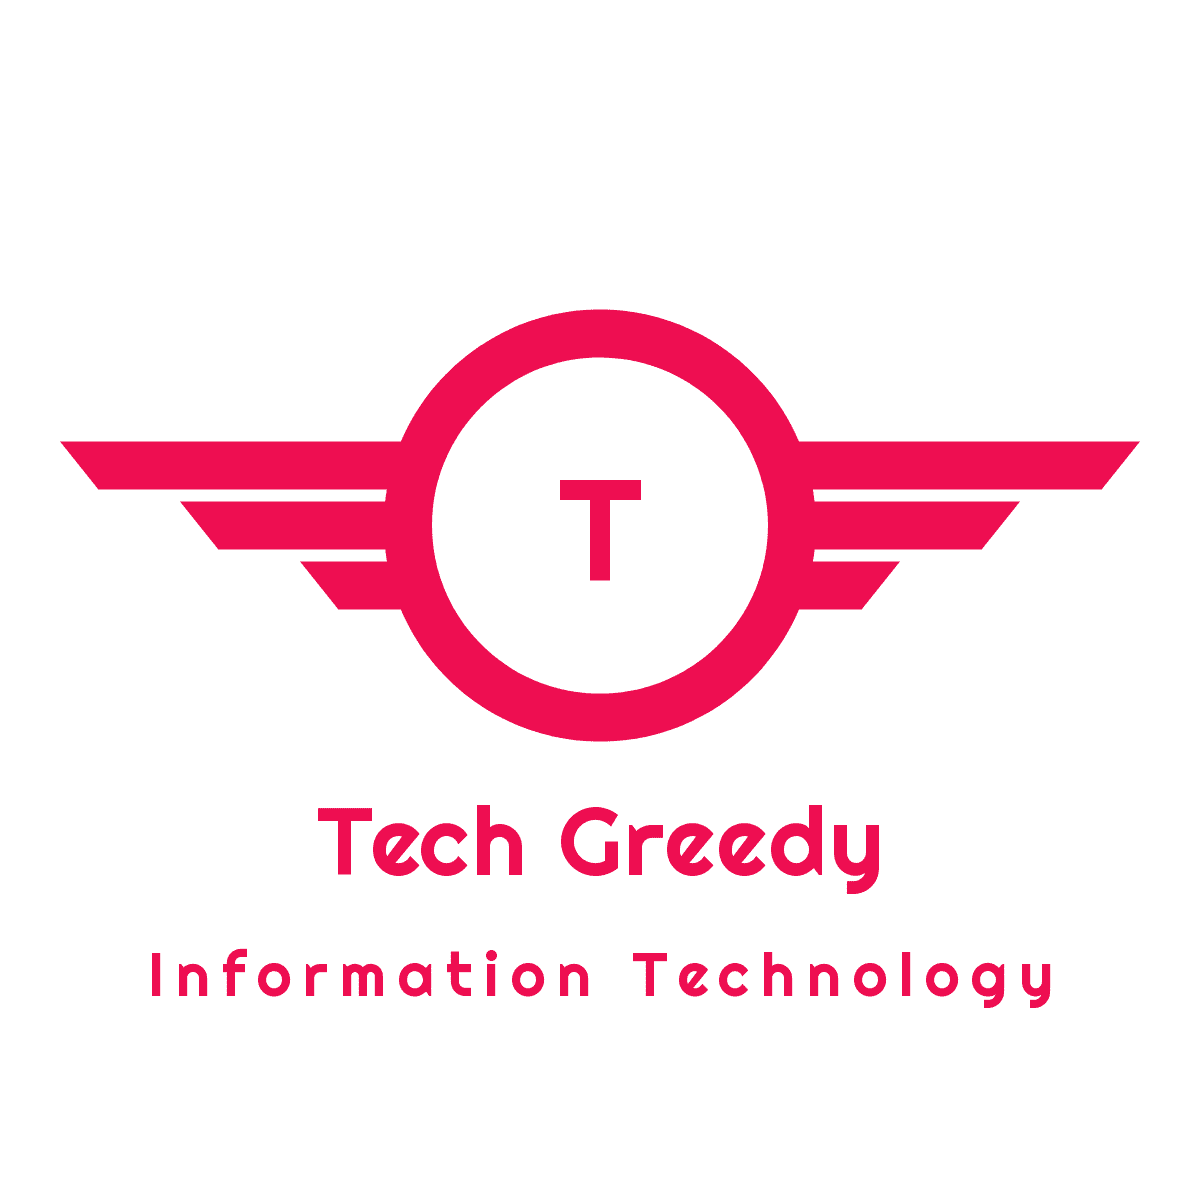 Tech Greedy